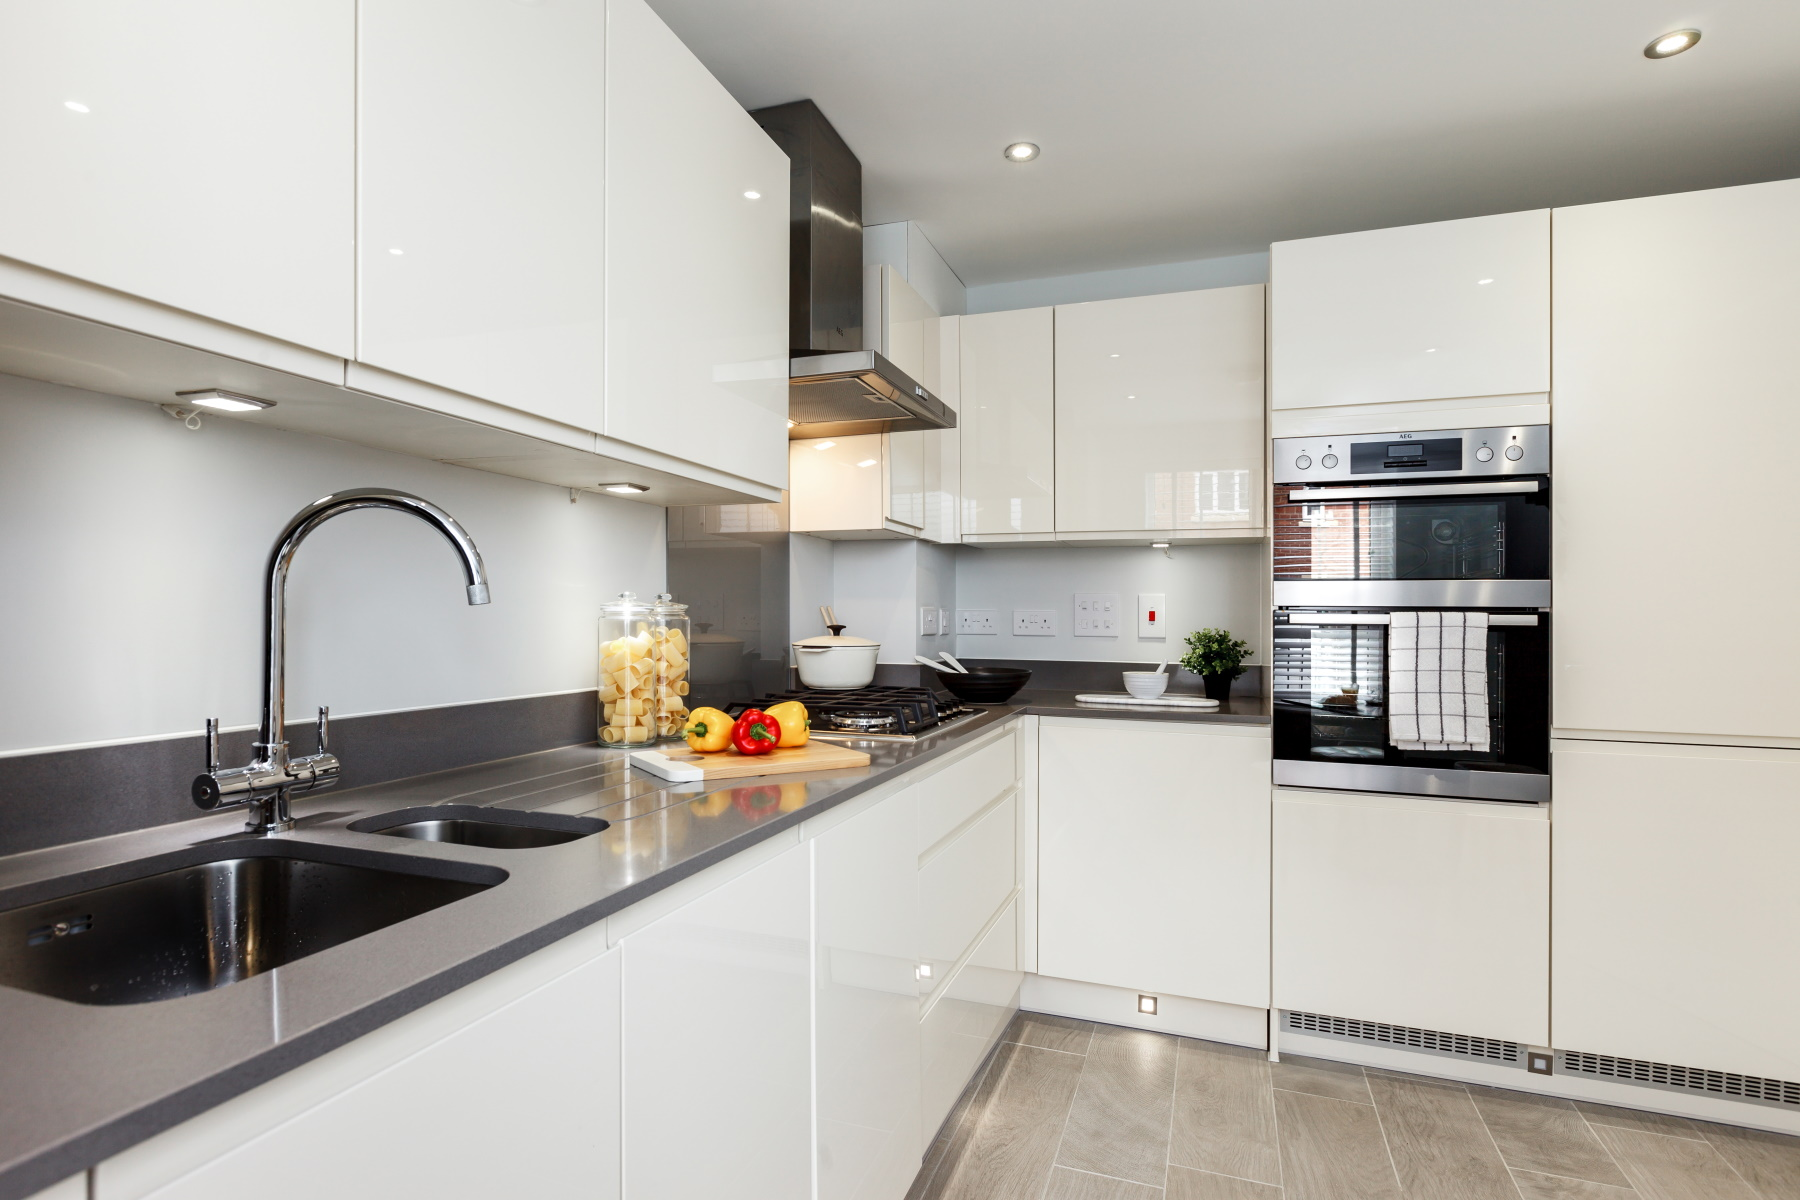 TW Exeter - Plumb Park - Withycome example kitchen